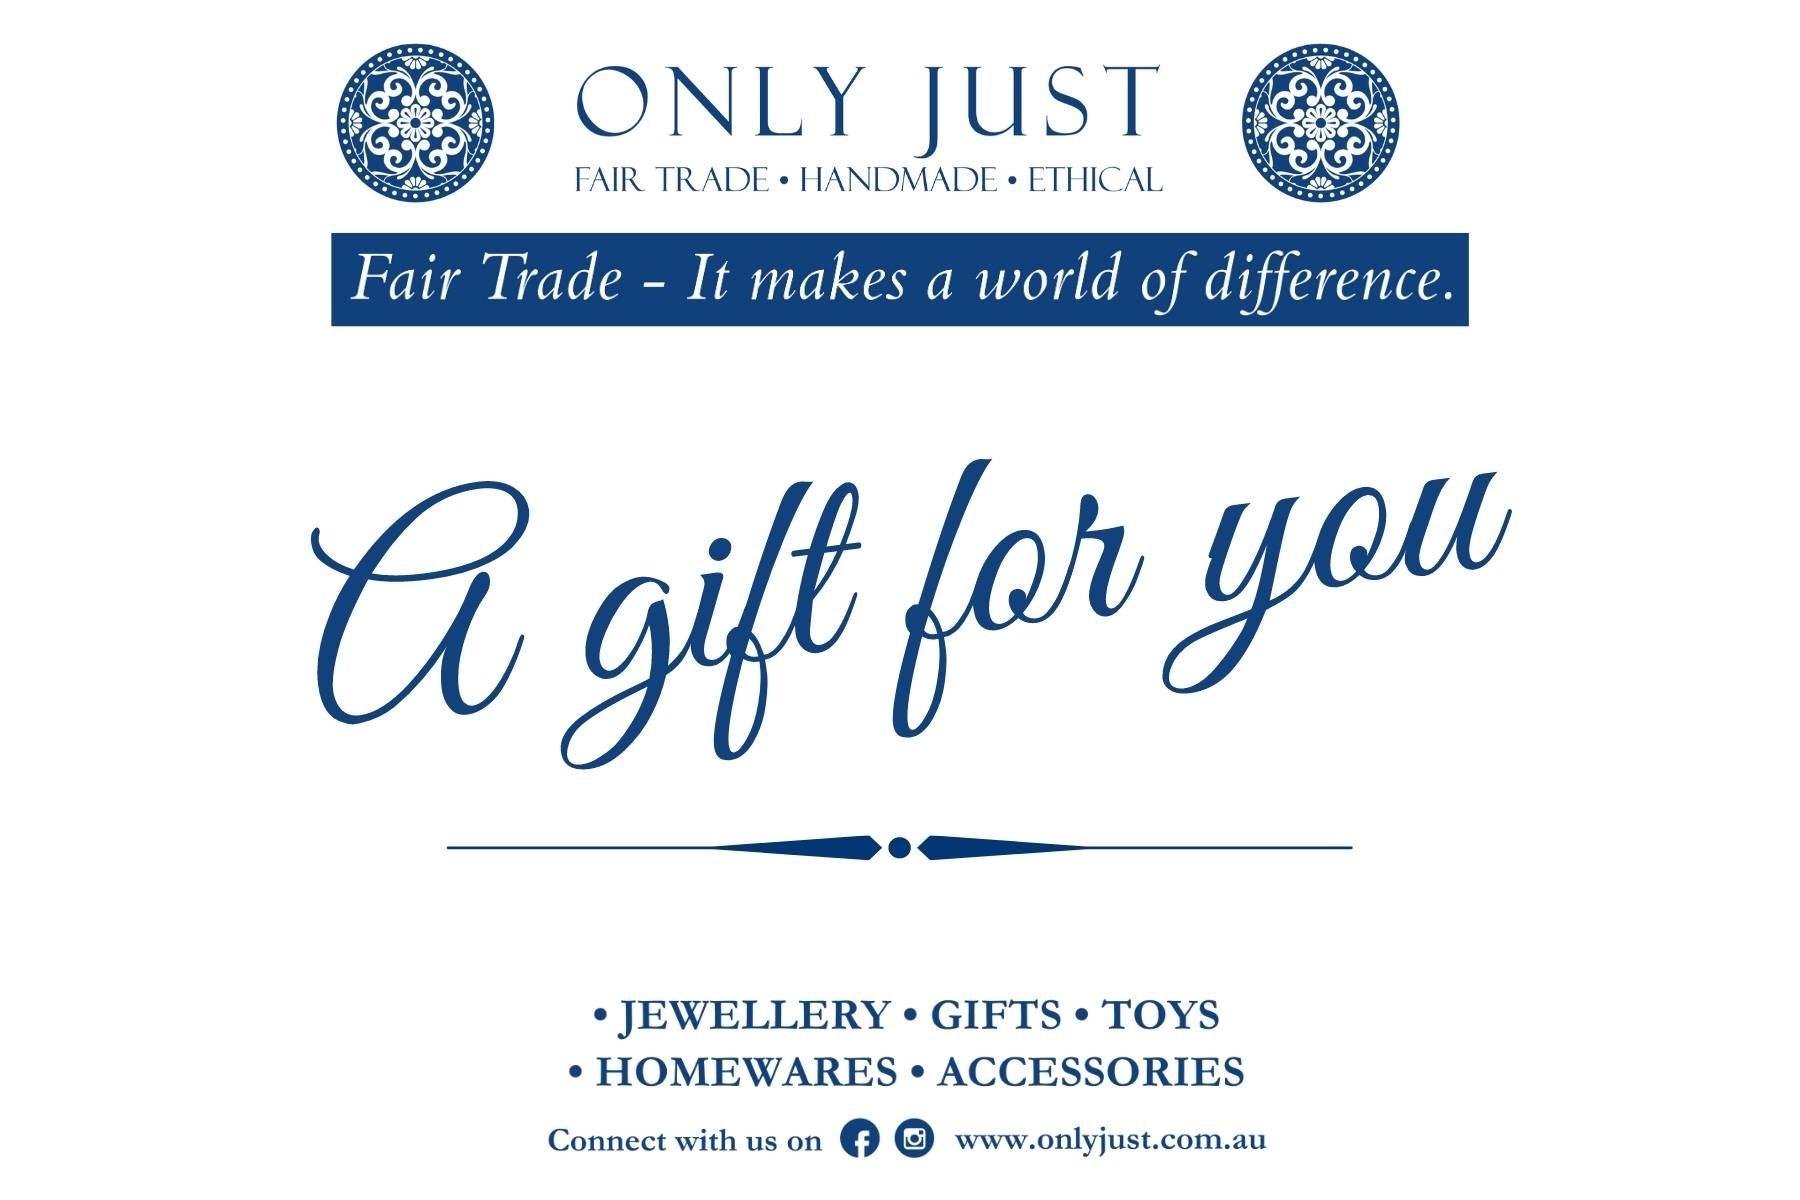 Give The Gift Of Fair Trade - Redeemable ONLINE ONLY